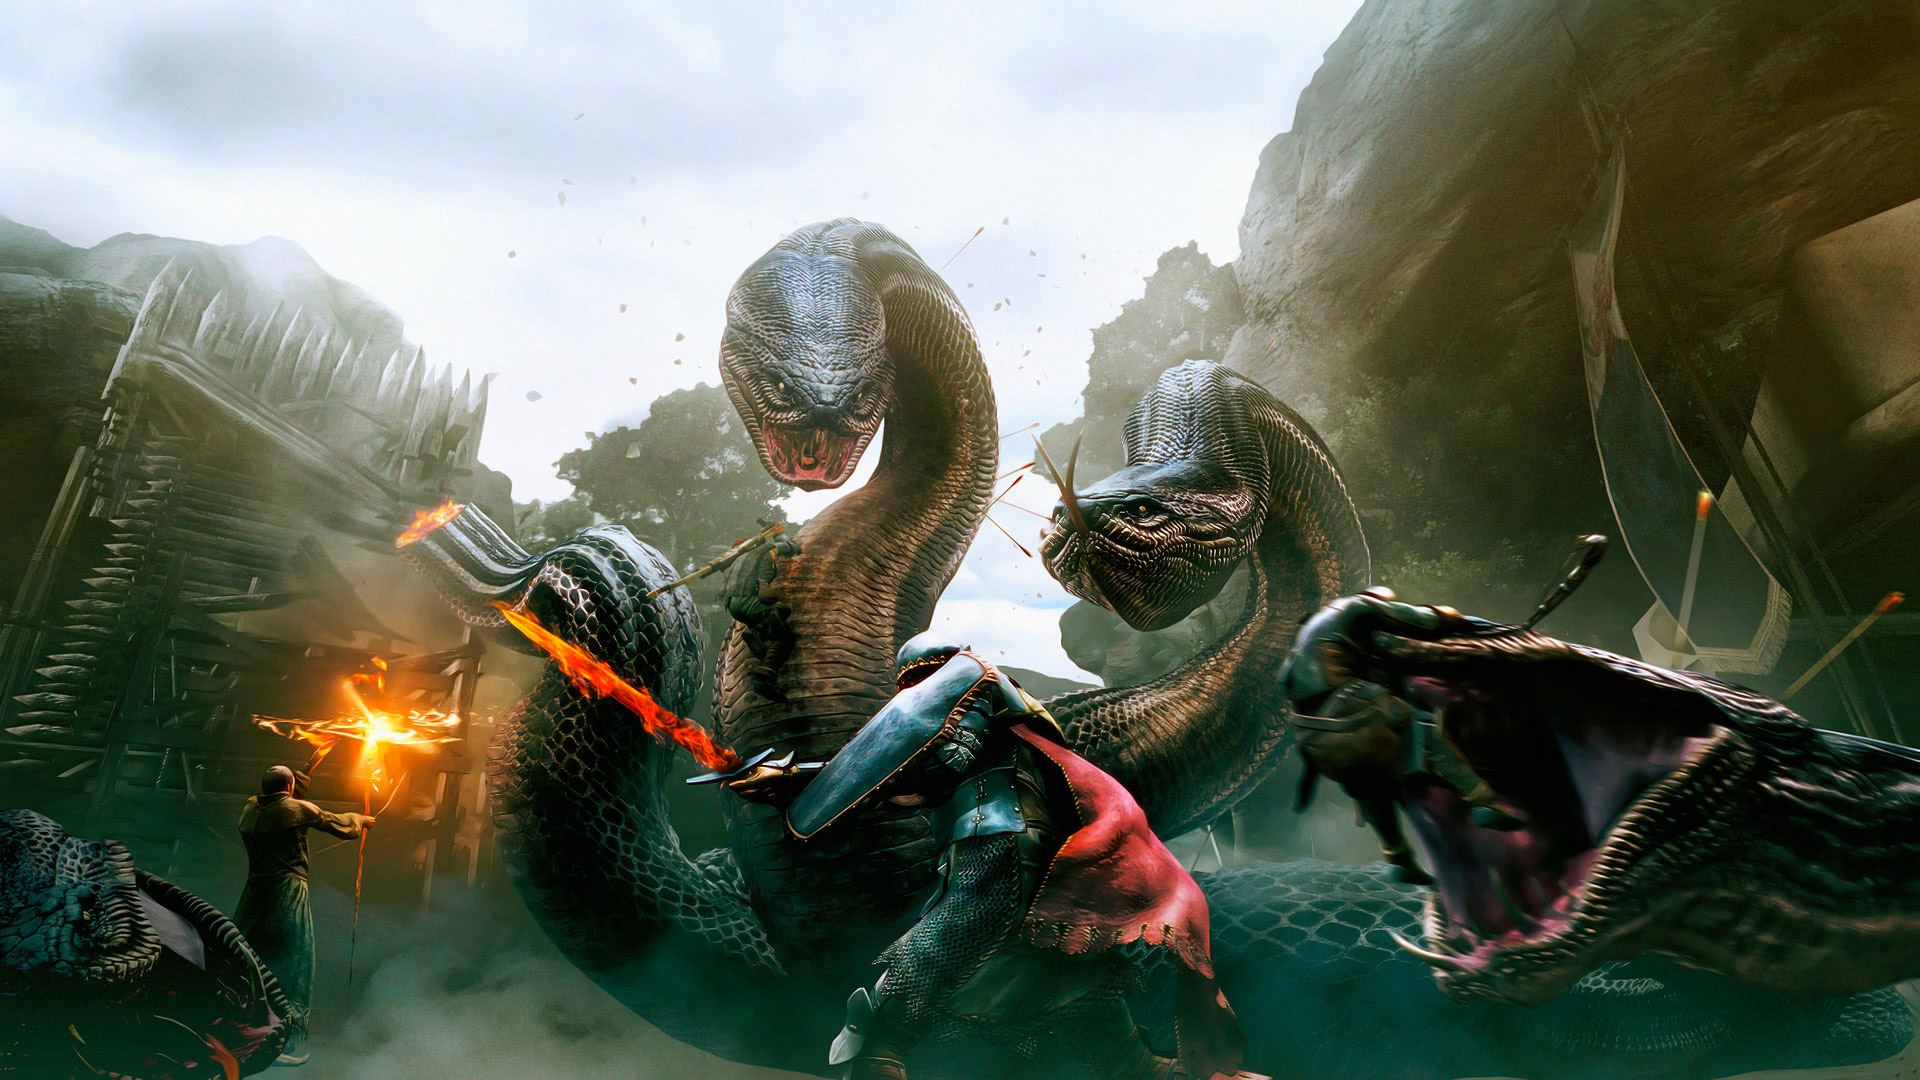 Dragon's Dogma Online coming to PS4, PS3 and PC as a free-to-play game